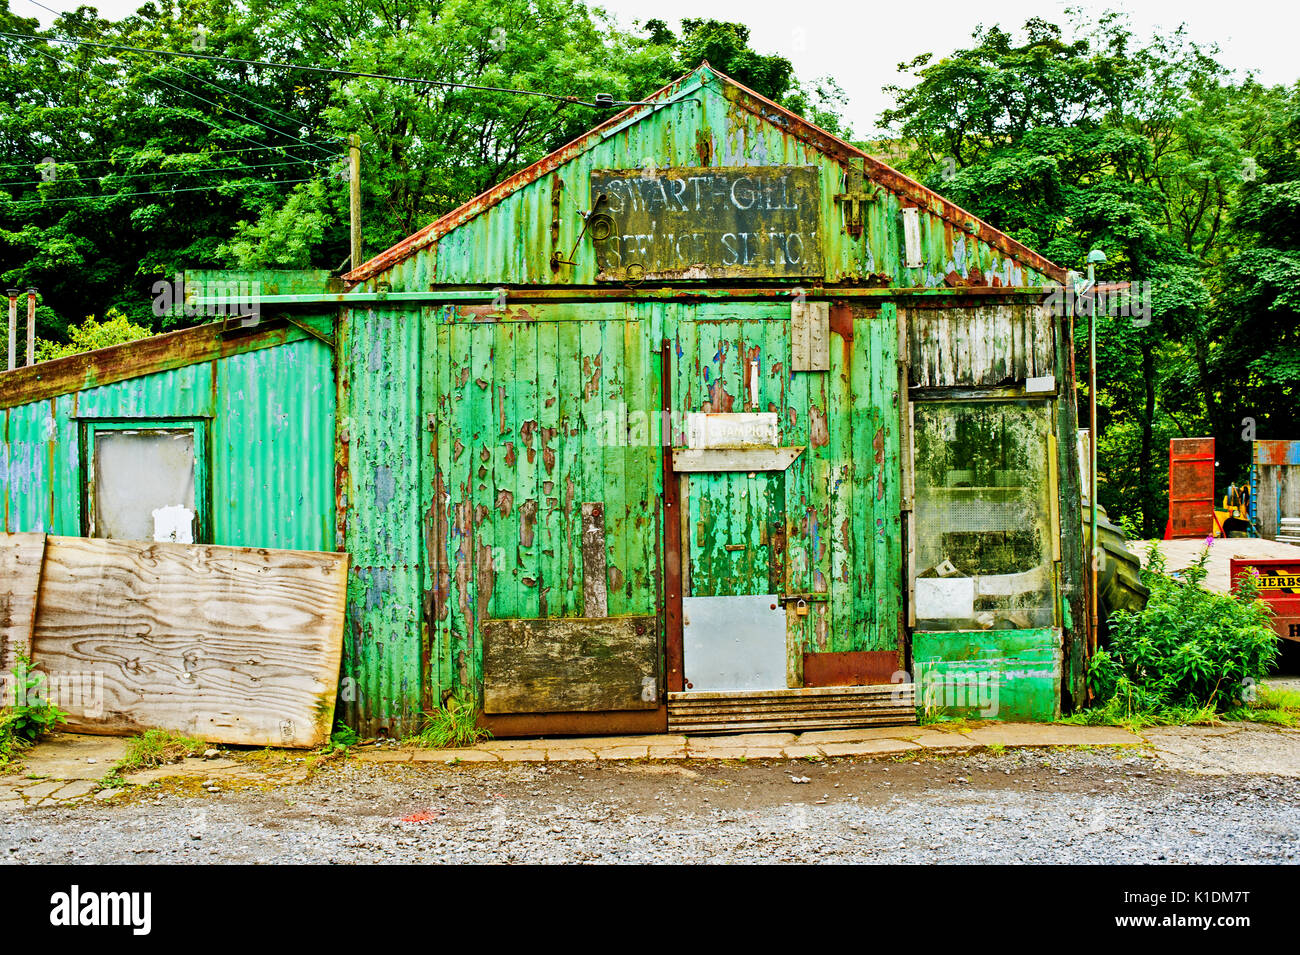 Swathgill Service station, Garsdale, Cumbria - Stock Image